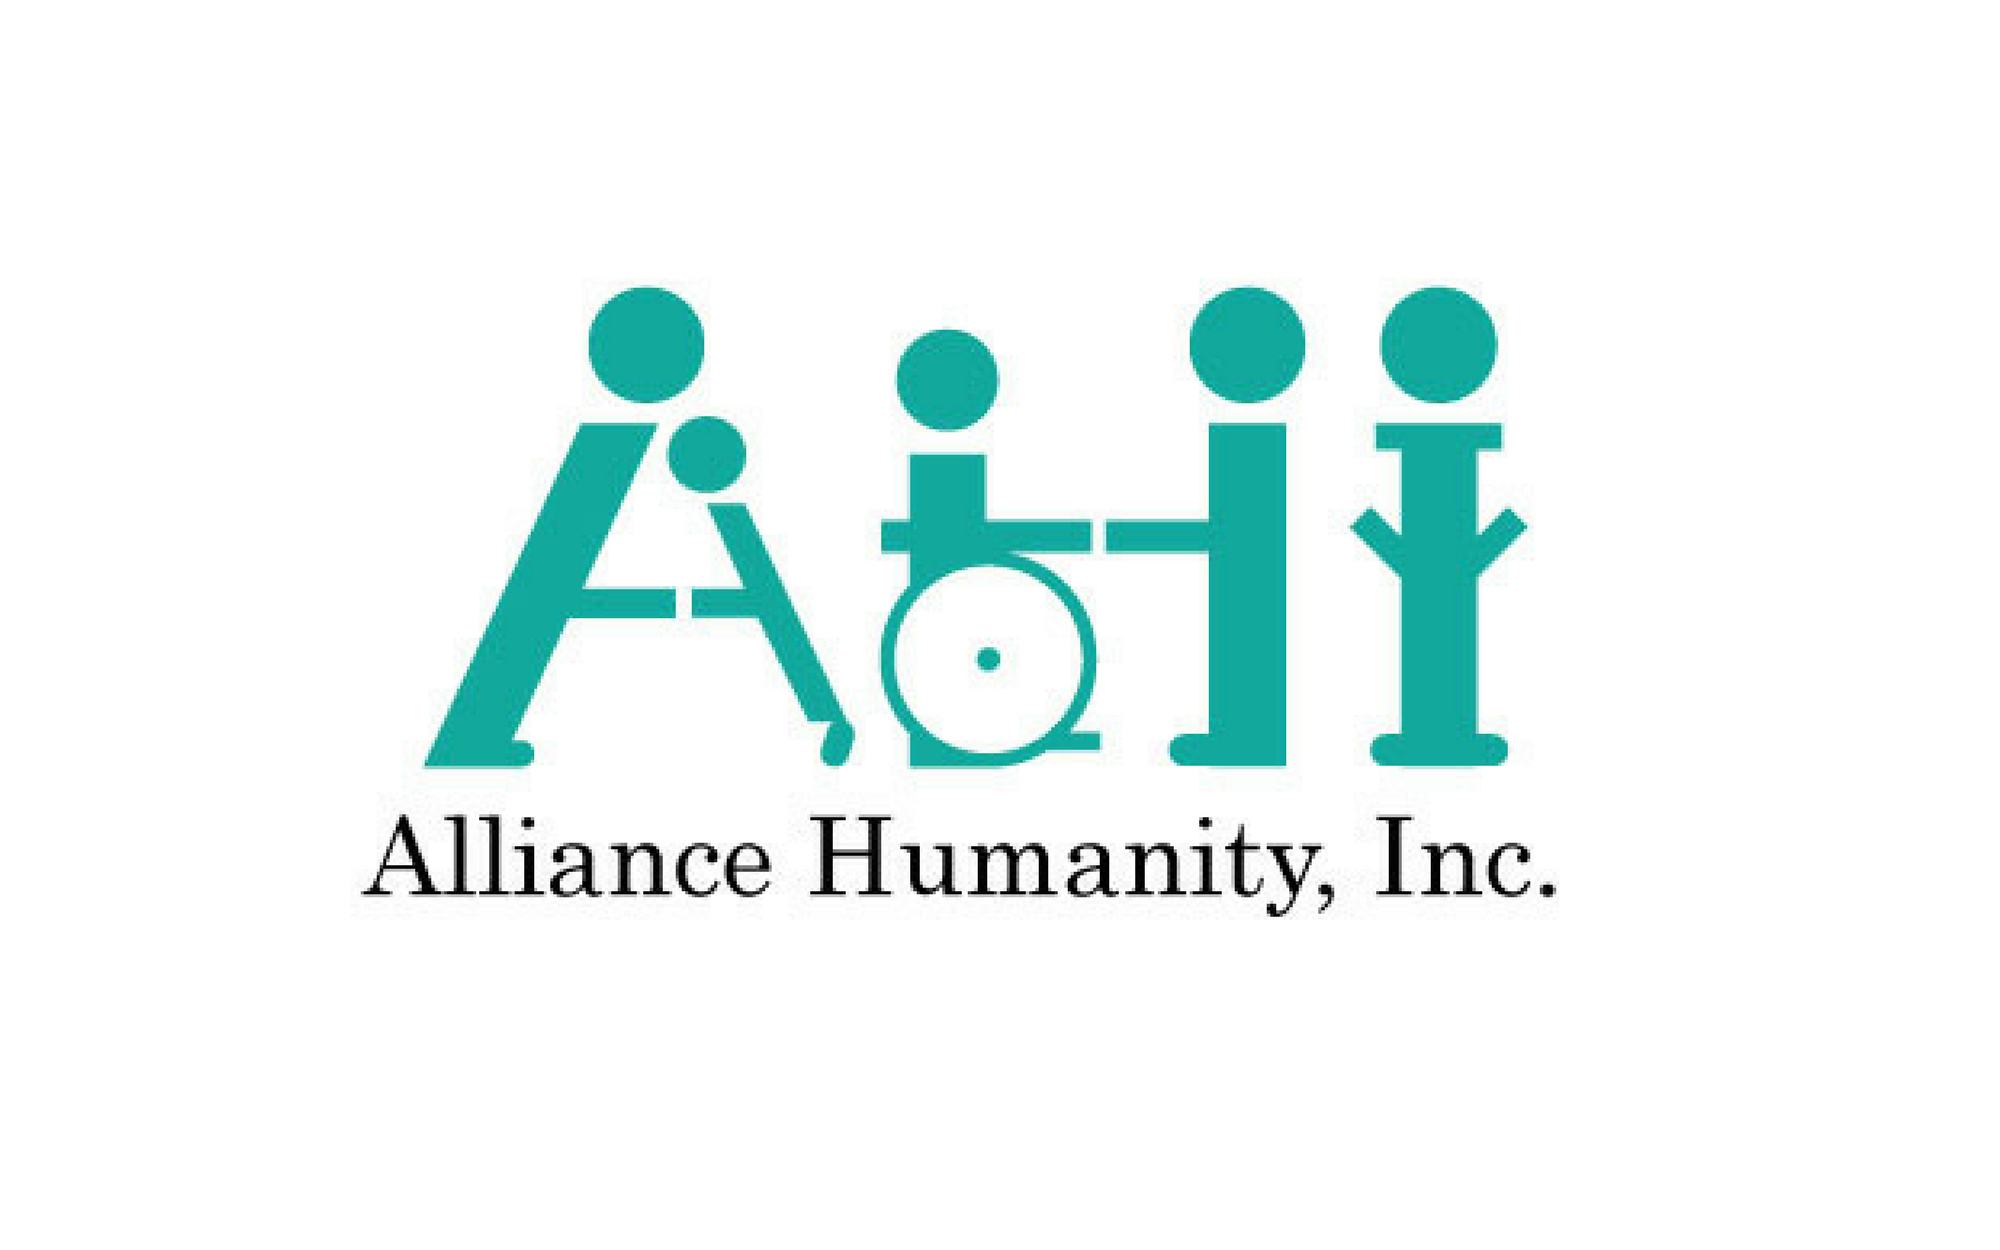 Alliance Humanity, Inc